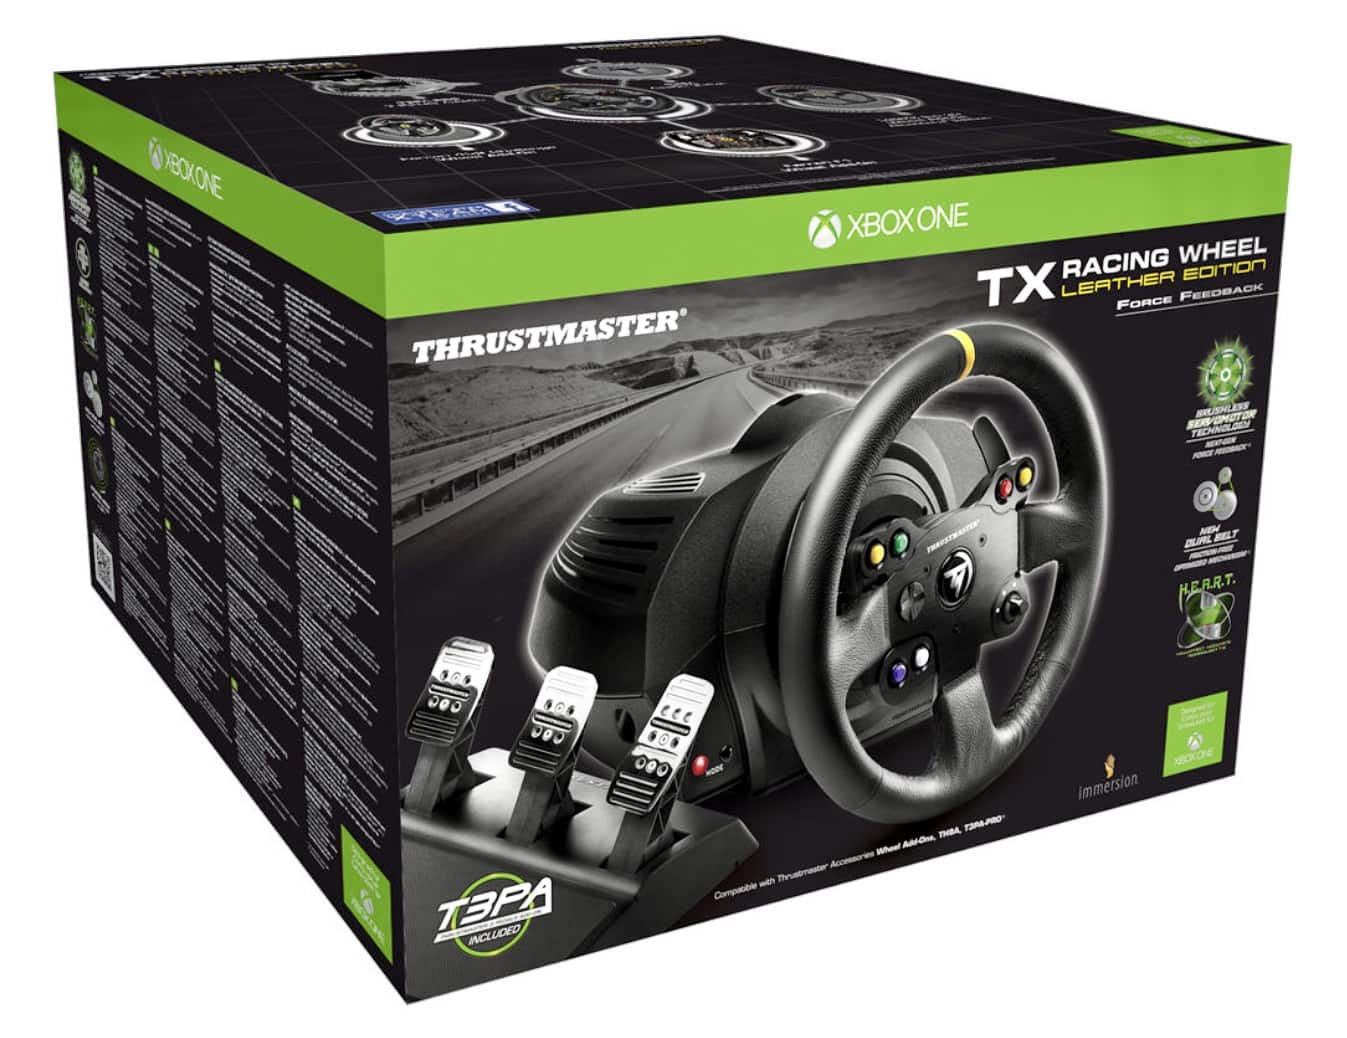 Thrustmaster TX Racing Wheel Leather Edition for Xbox One/PC or Thrustmaster T300 Racing Wheel Alcantara Edition for PS4/PC $349.99 at B&H Photo No Tax & Free Shipping